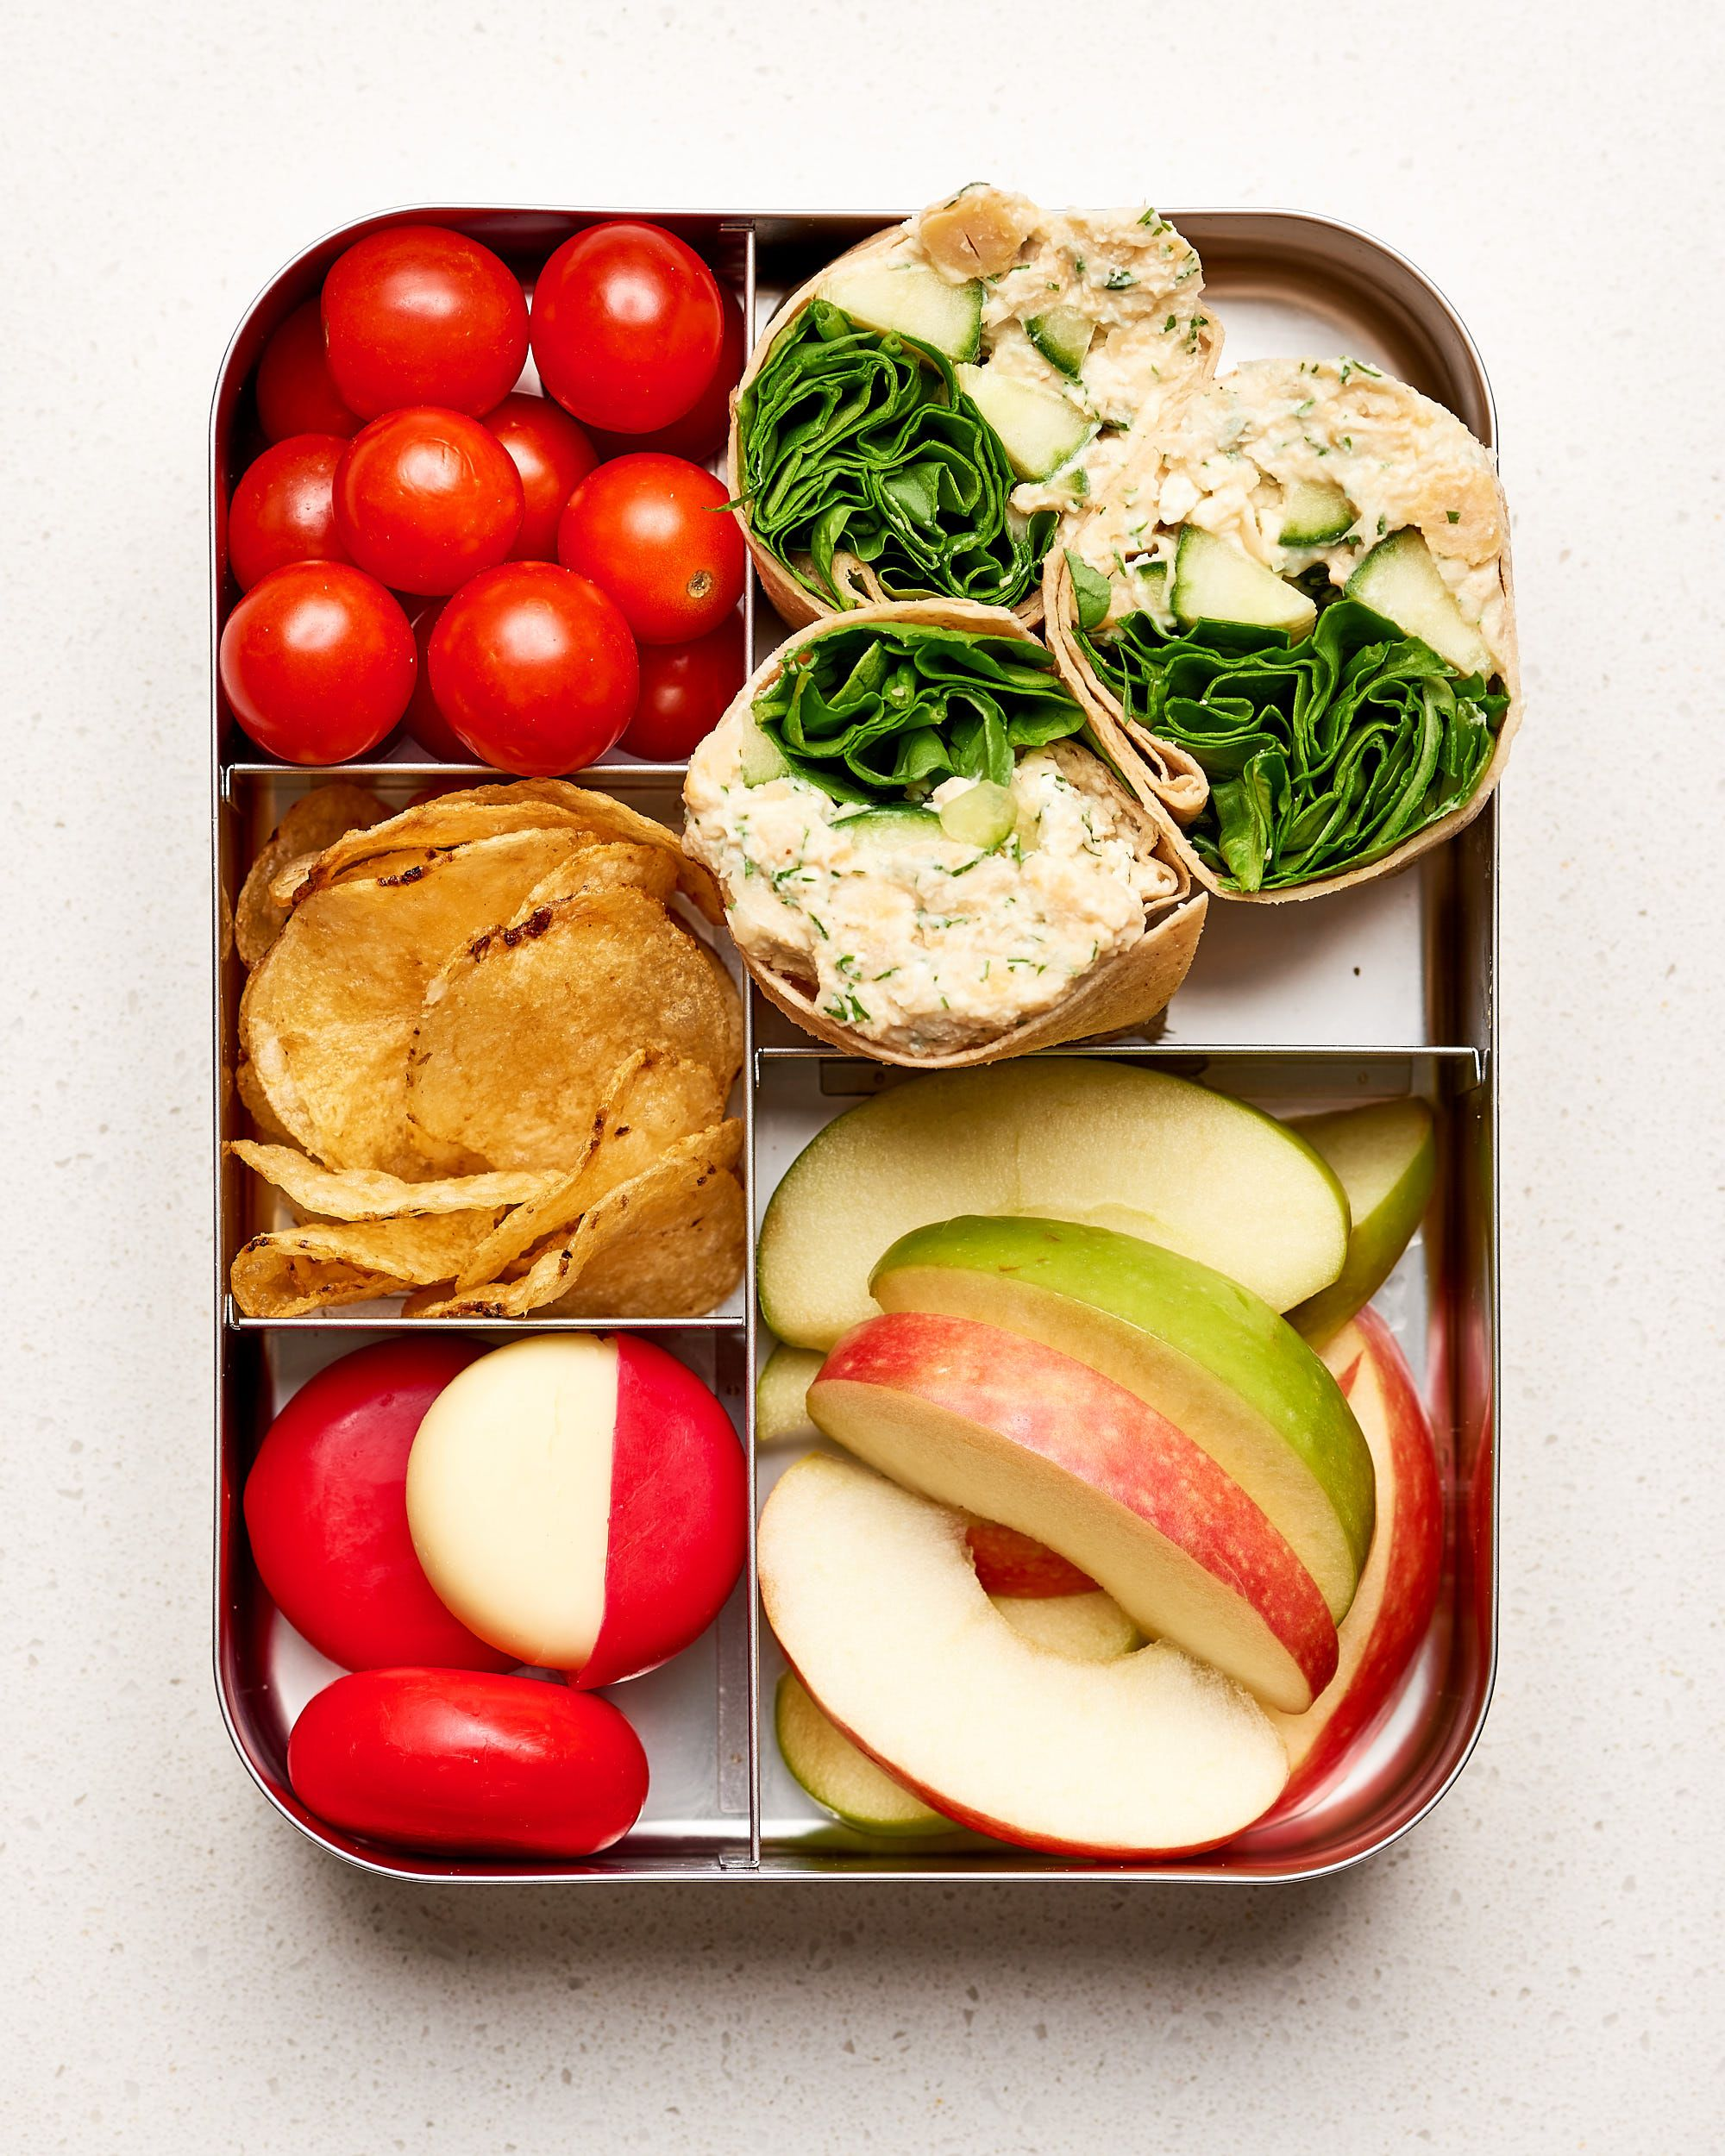 10 Easy Lunch Box Ideas For Vegetarians Healthy